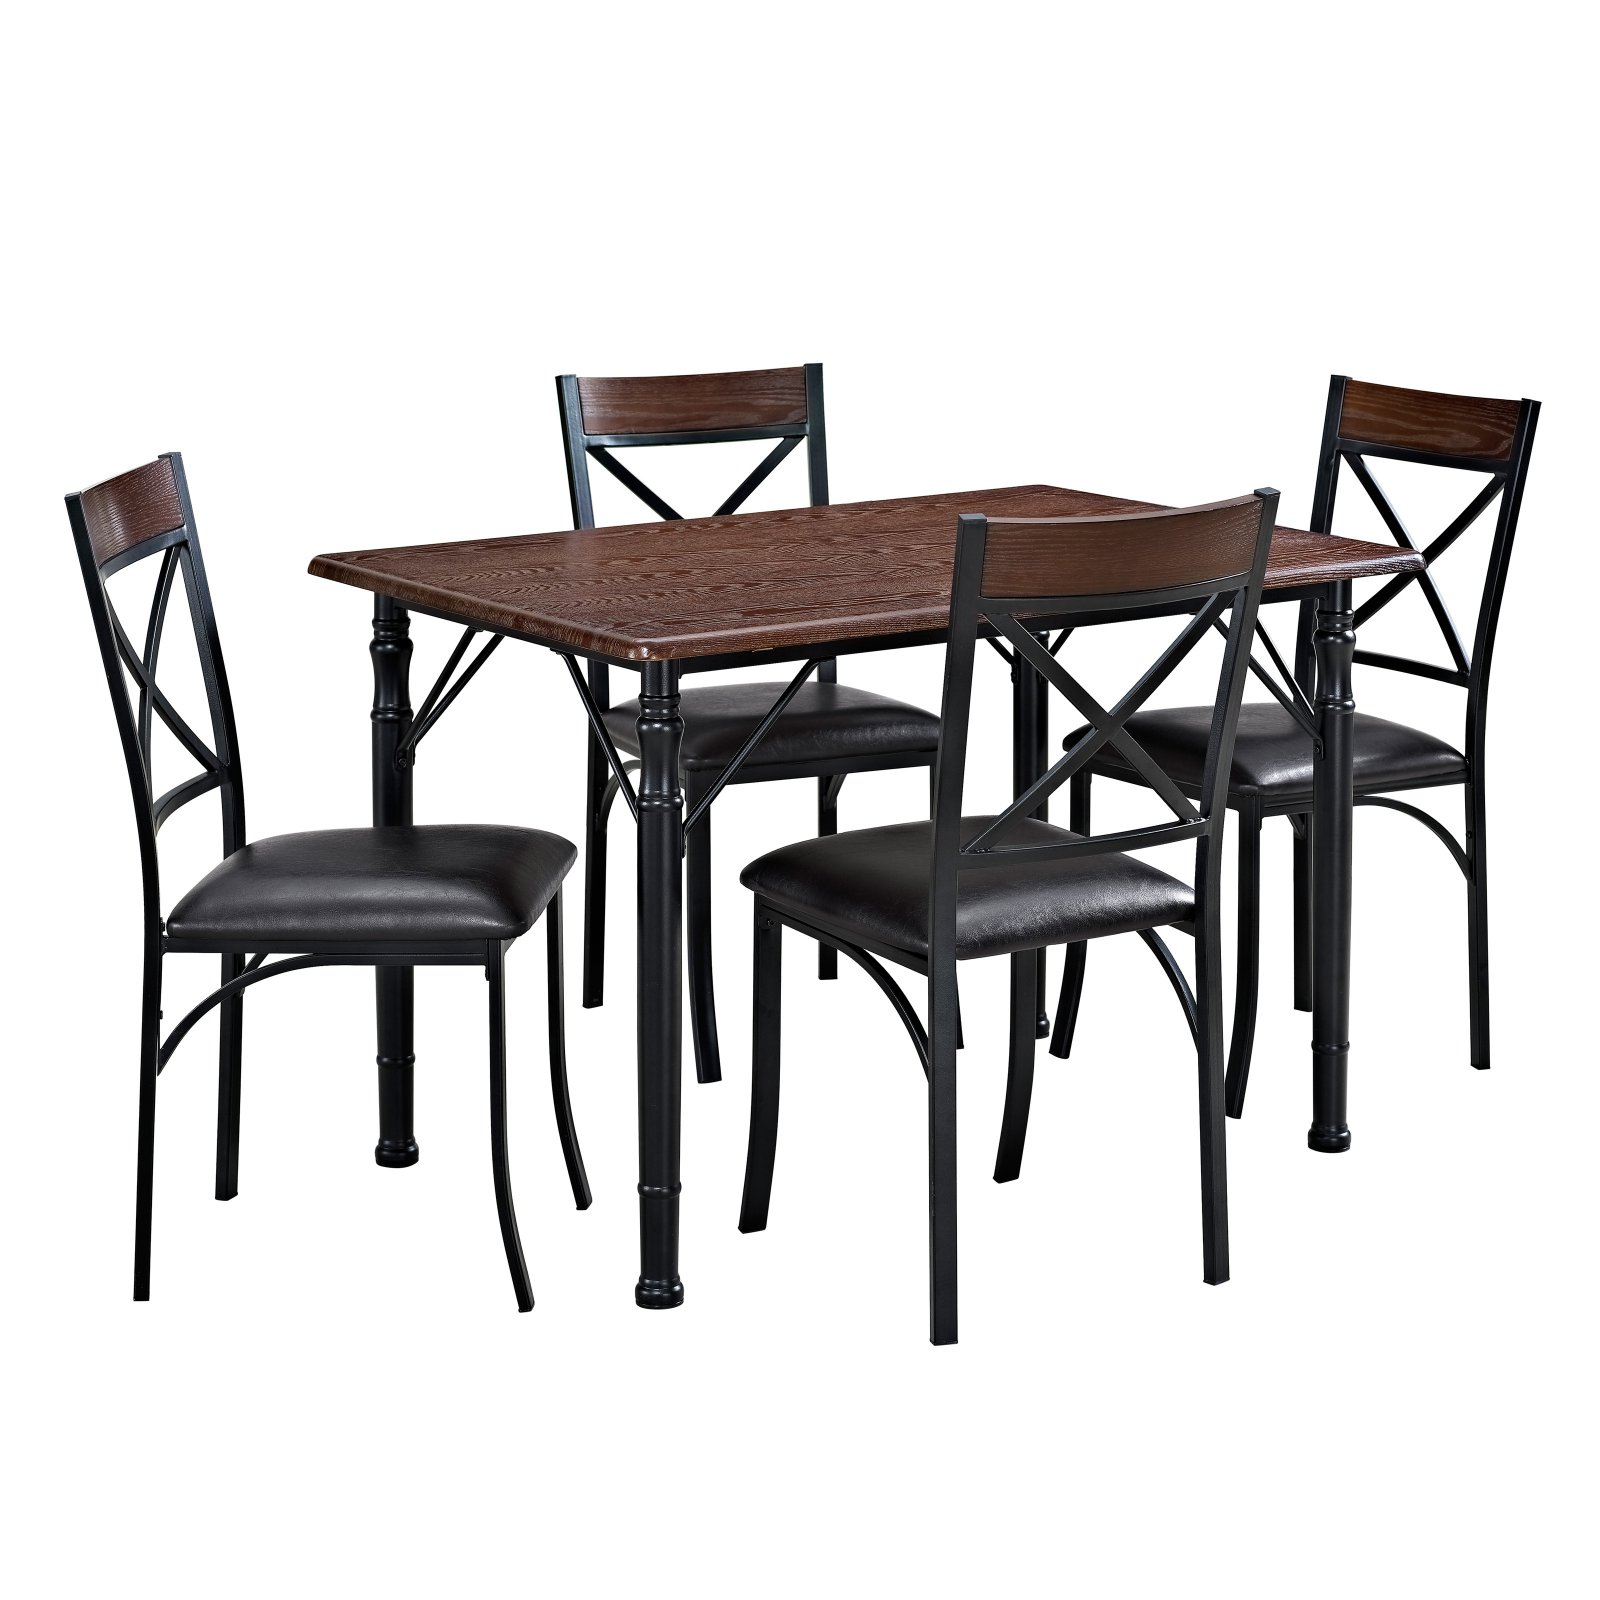 Mainstays 5-Piece Dining Set